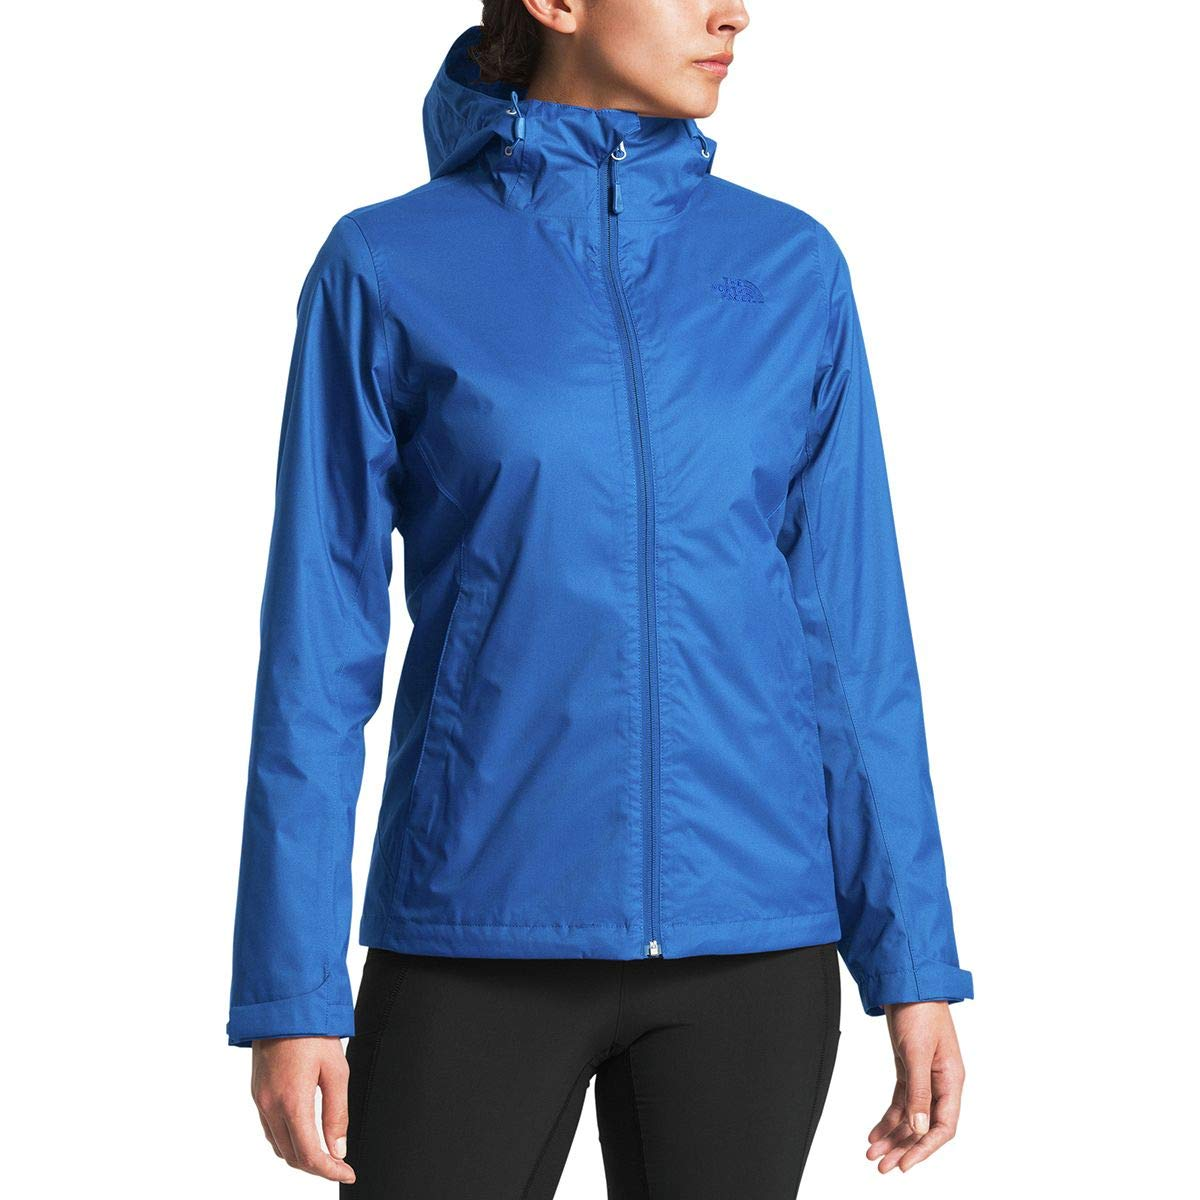 Bomber bluee Turkish Sea The North Face Women's Arrowood Triclimate Jacket